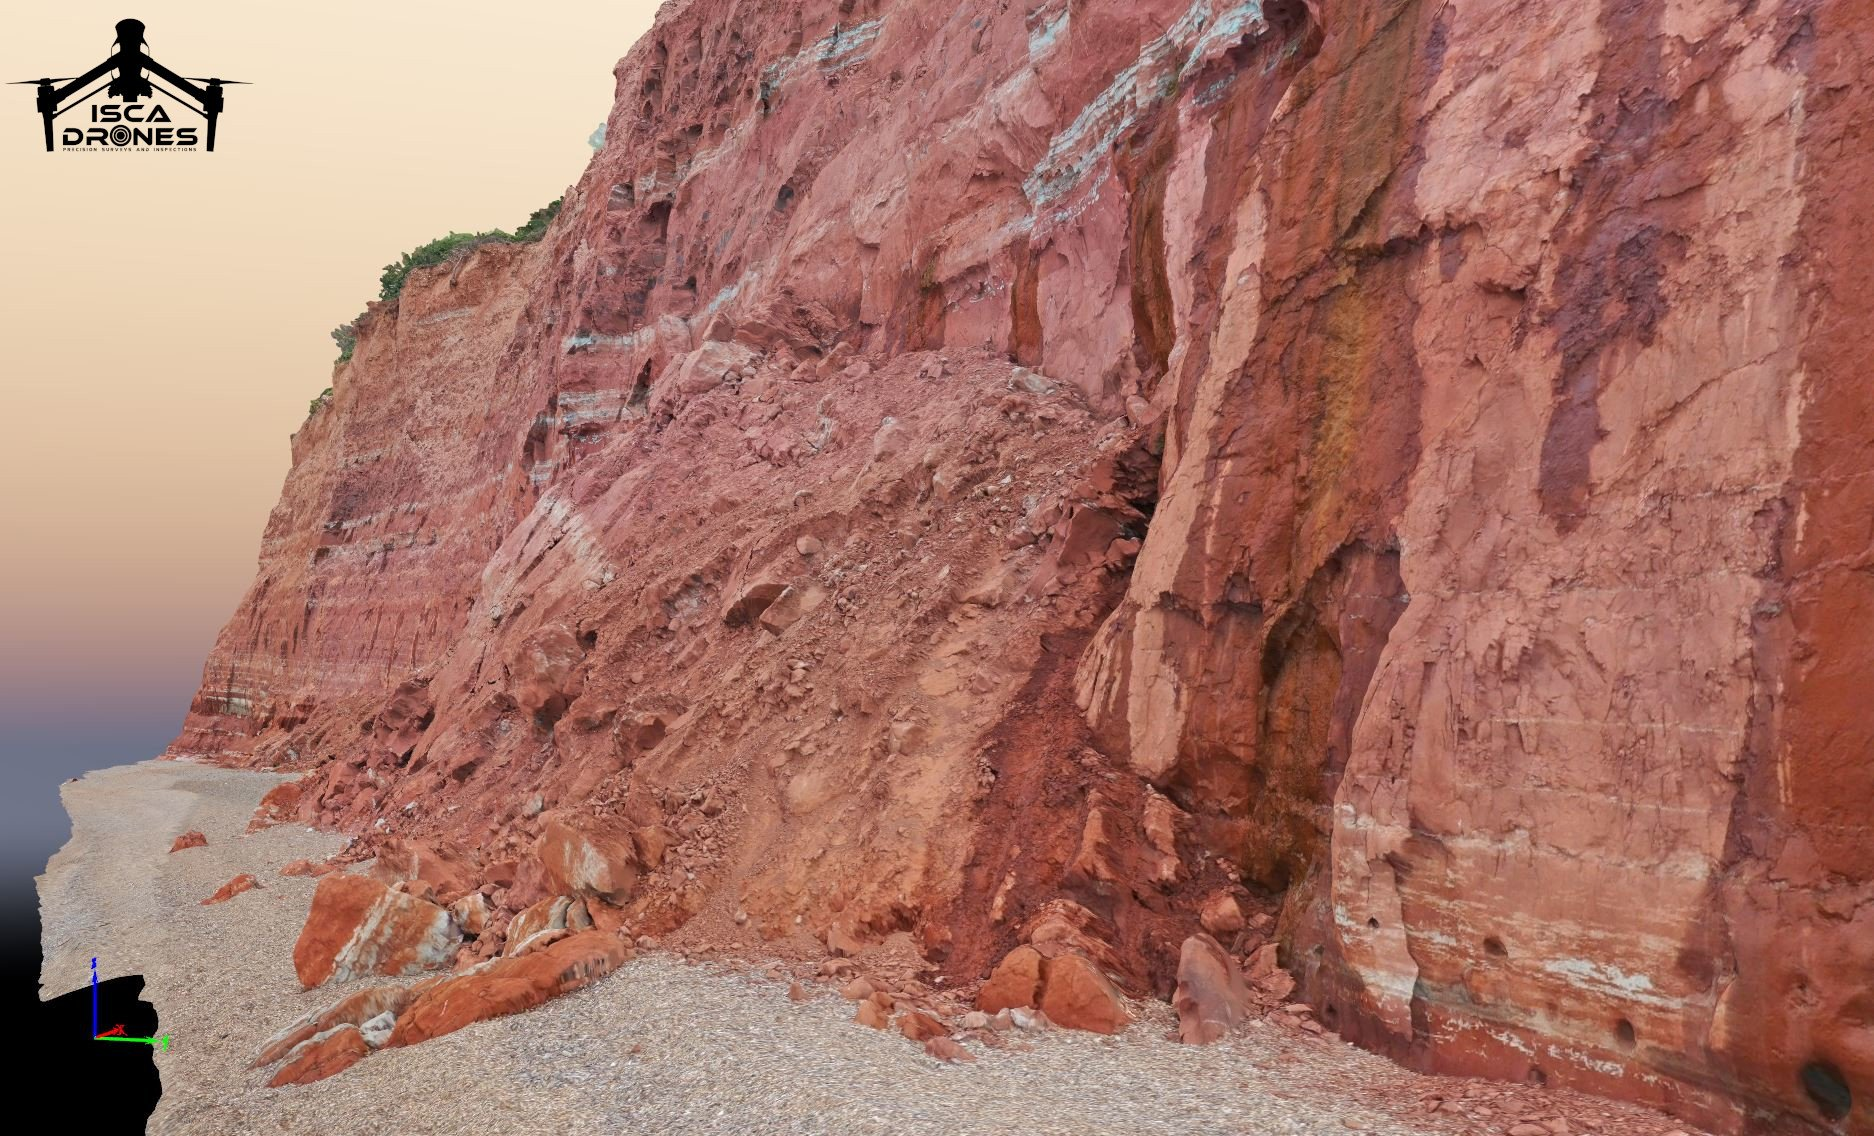 Sidmouth cliffs - Image courtesy of ISCA Drones.